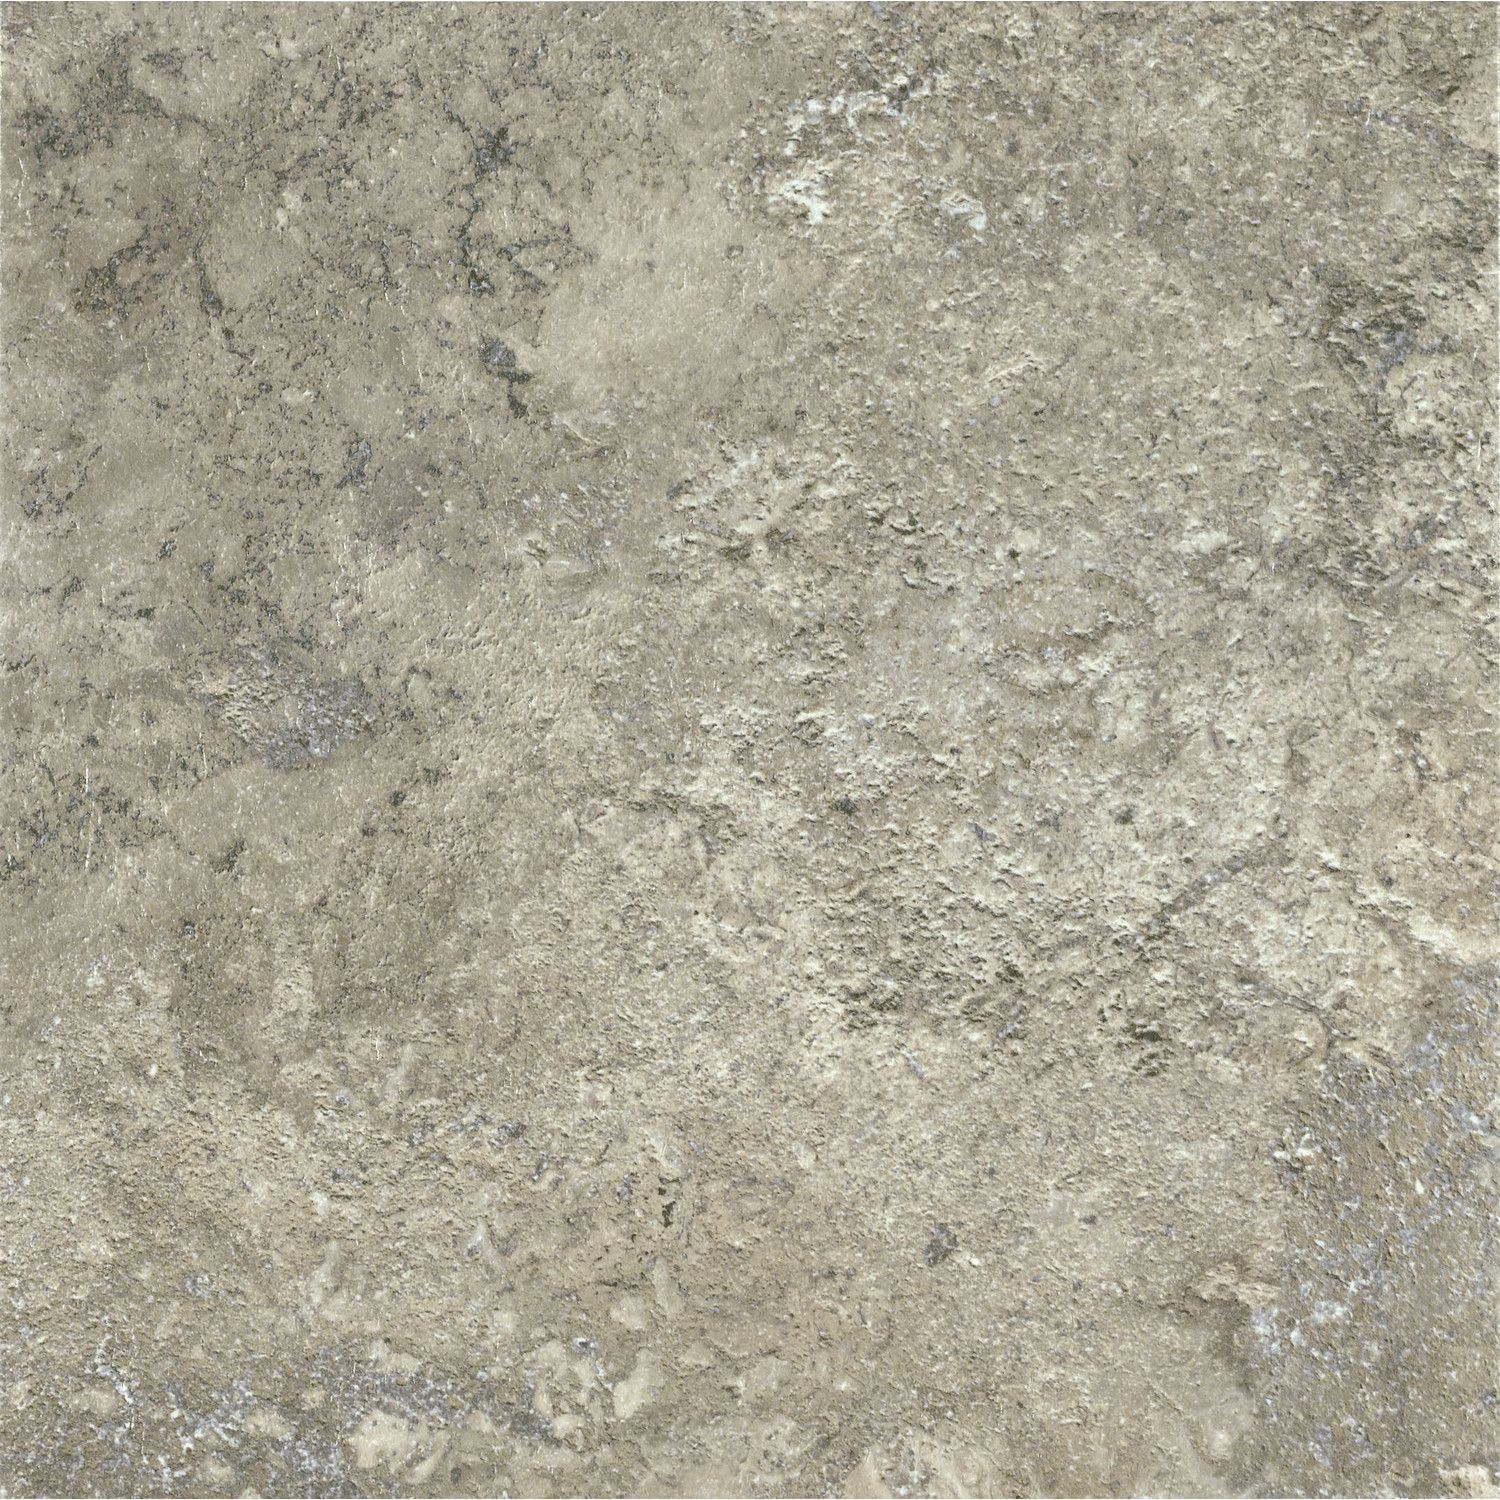 Armstrong alterna tuscan path 16 x 16 vinyl tile in dove gray armstrong alterna tuscan path 16 x 16 vinyl tile in dailygadgetfo Gallery